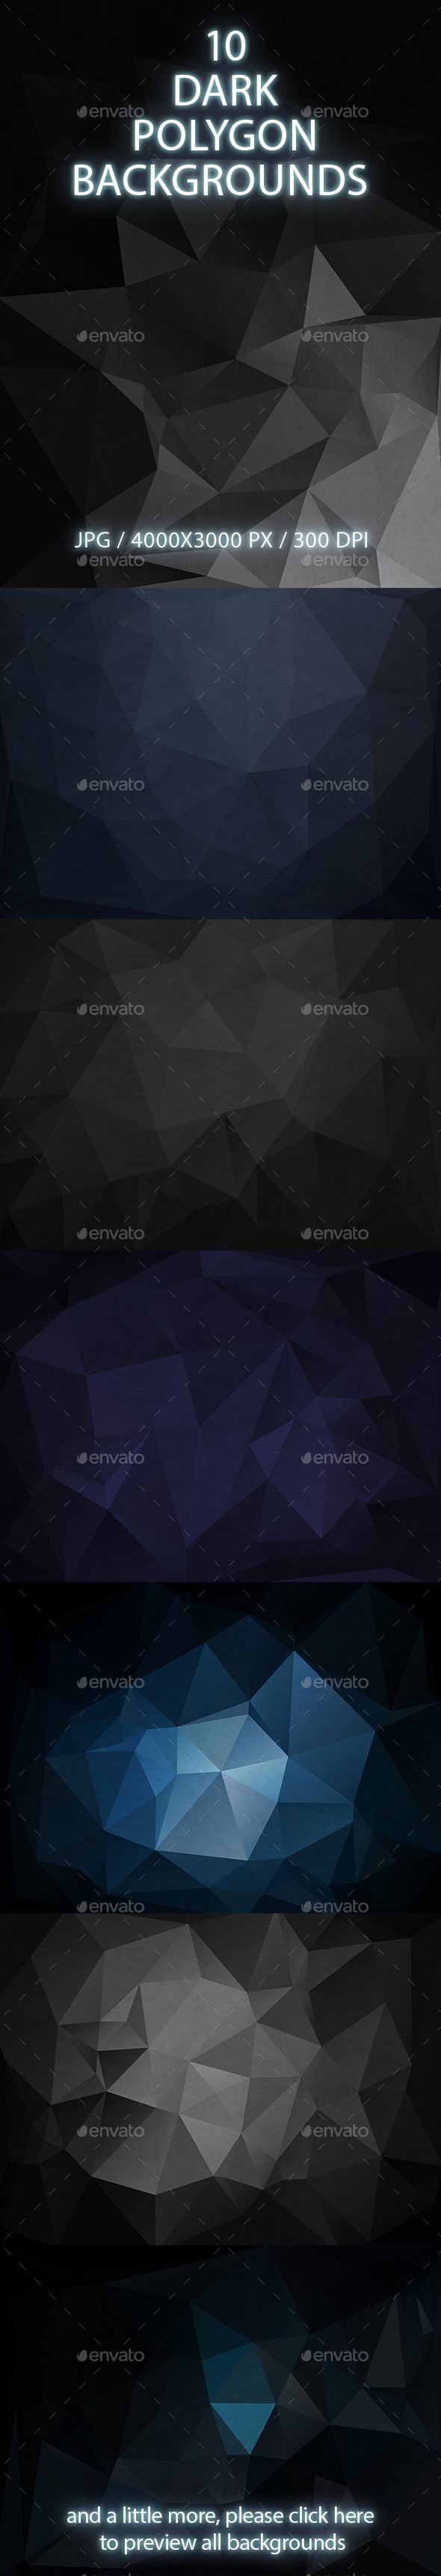 GraphicRiver 10 Dark Polygon Backgrounds 10379245